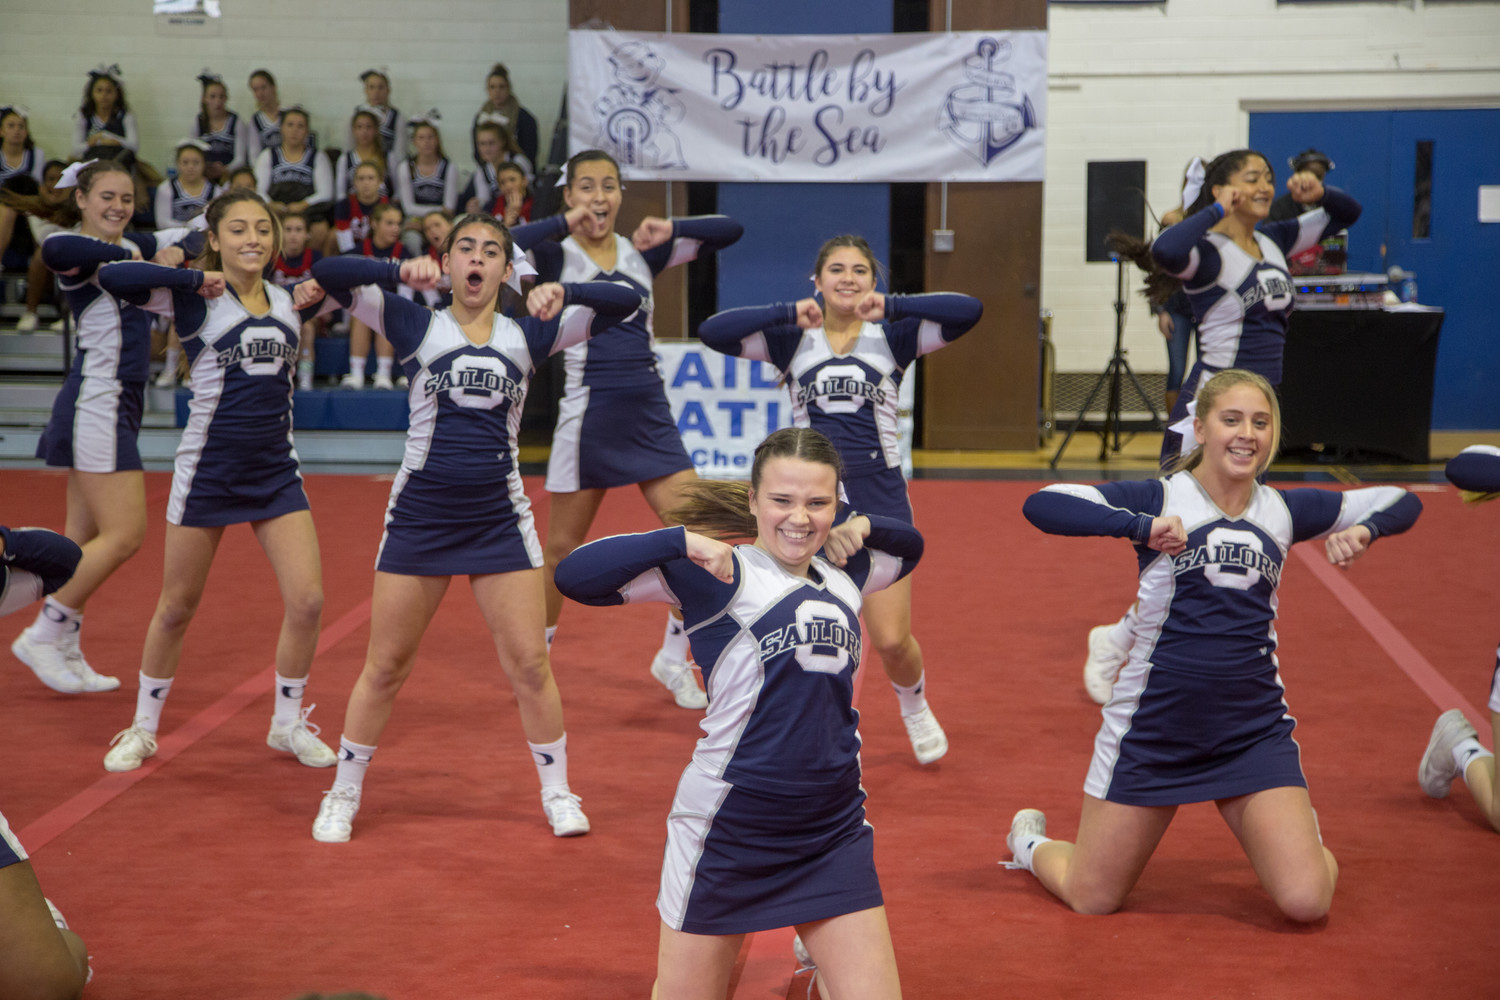 The invitational serves both as county competition and a fundraiser for the varsity team's annual trip to nationals at Disney World, according to varsity Coach Samantha Chaback.